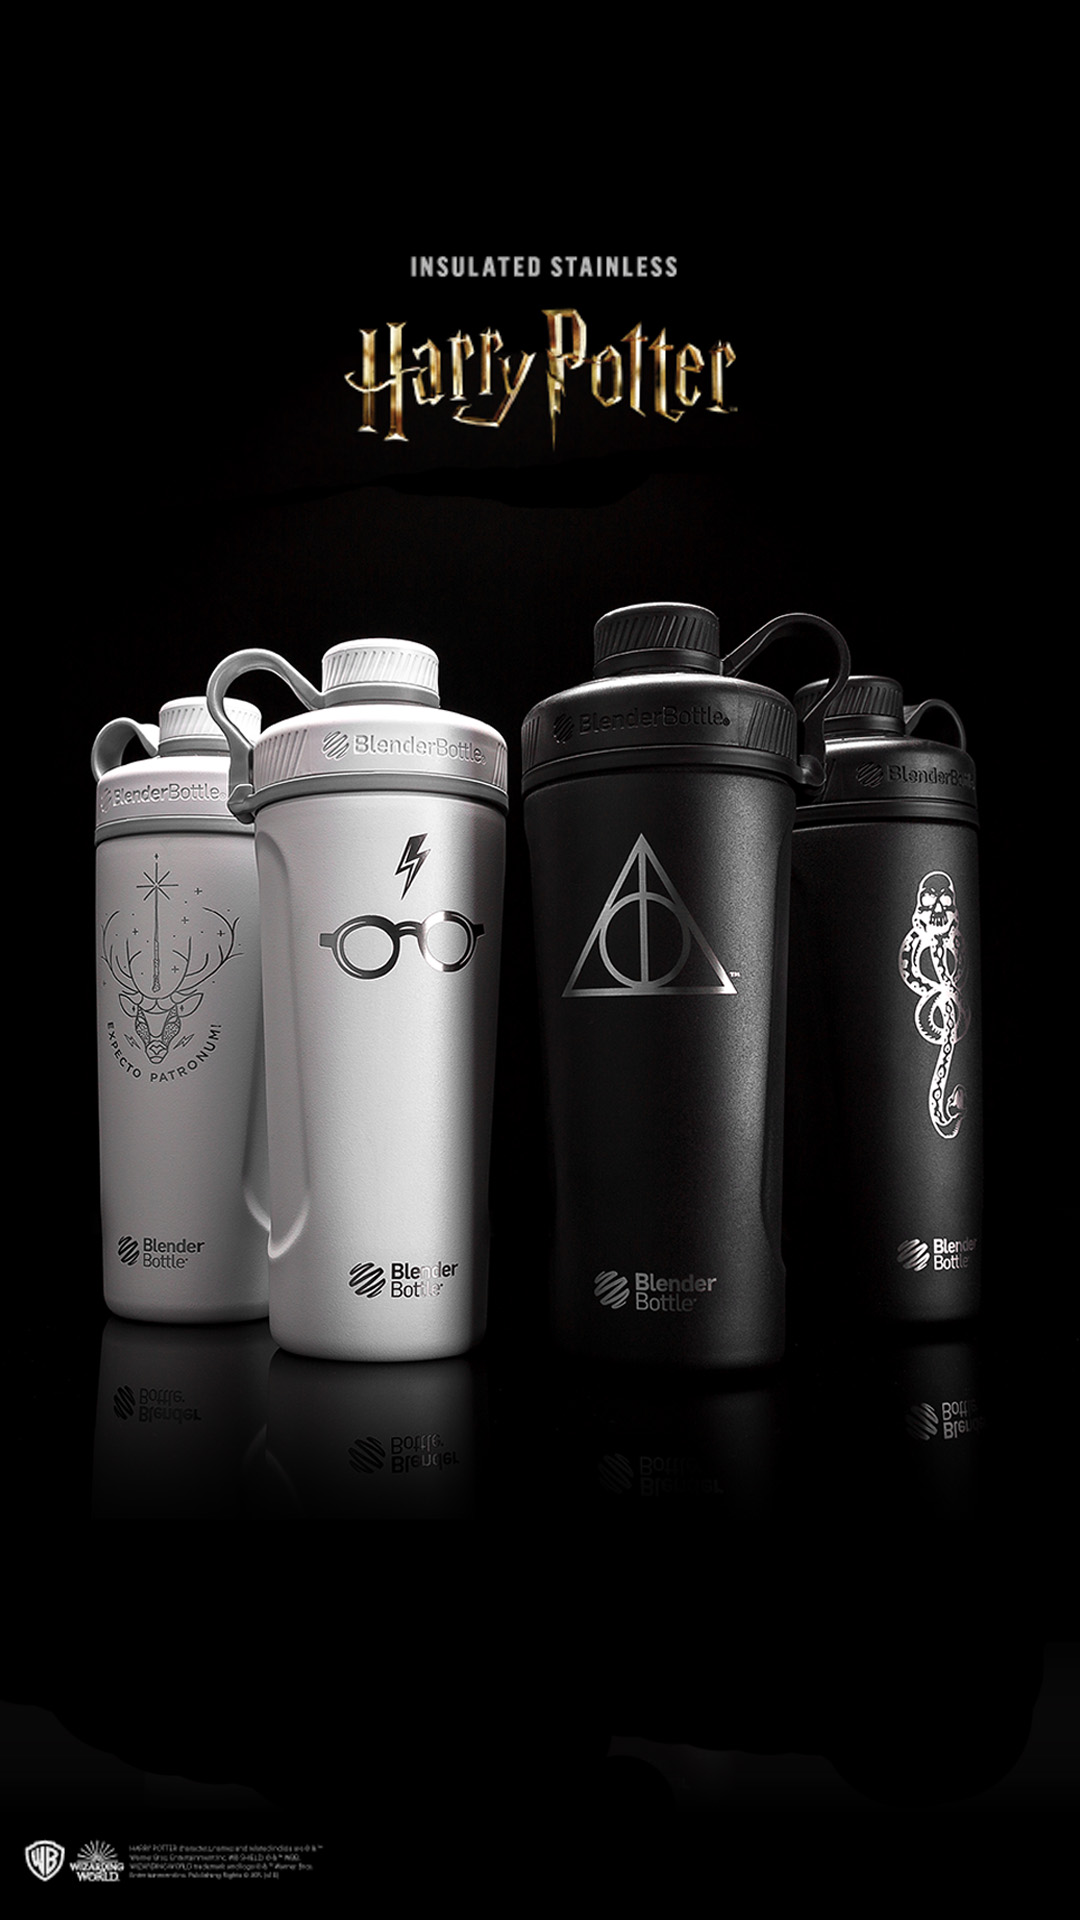 Radian Stainless Steel Bottles with Harry Potter Branding